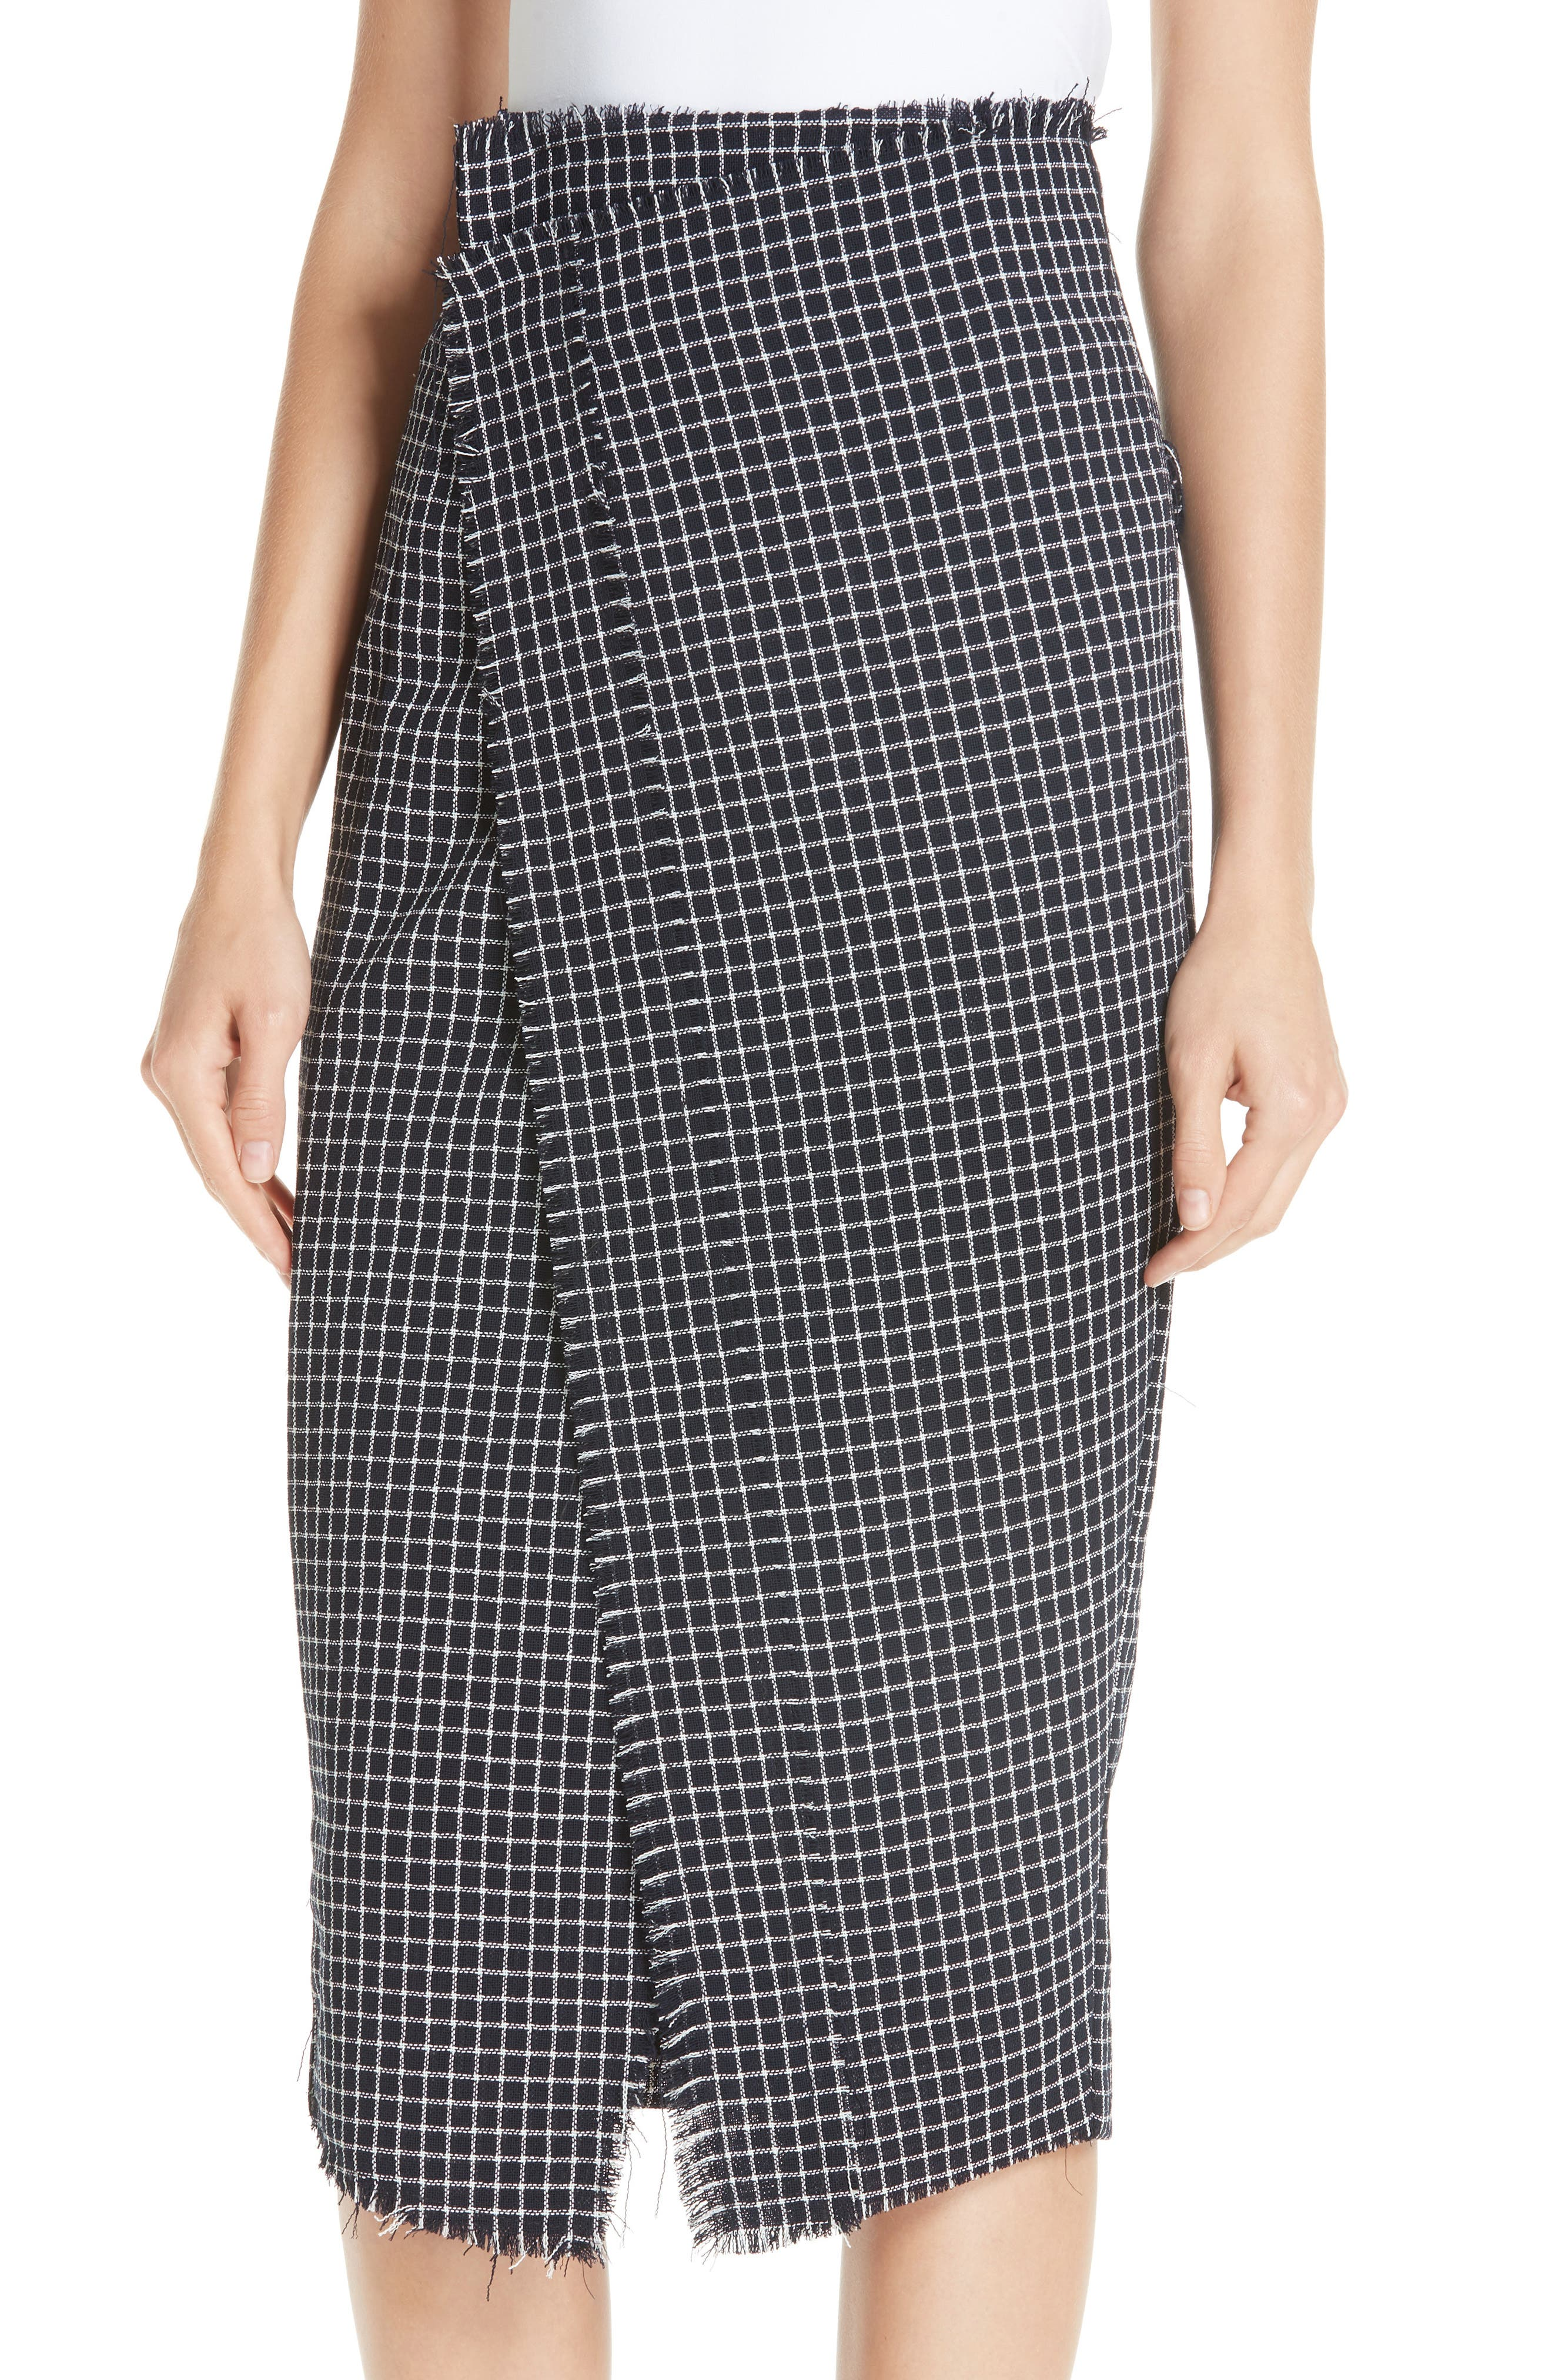 JASON WU COLLECTION,                             Wool Check Skirt,                             Alternate thumbnail 4, color,                             001